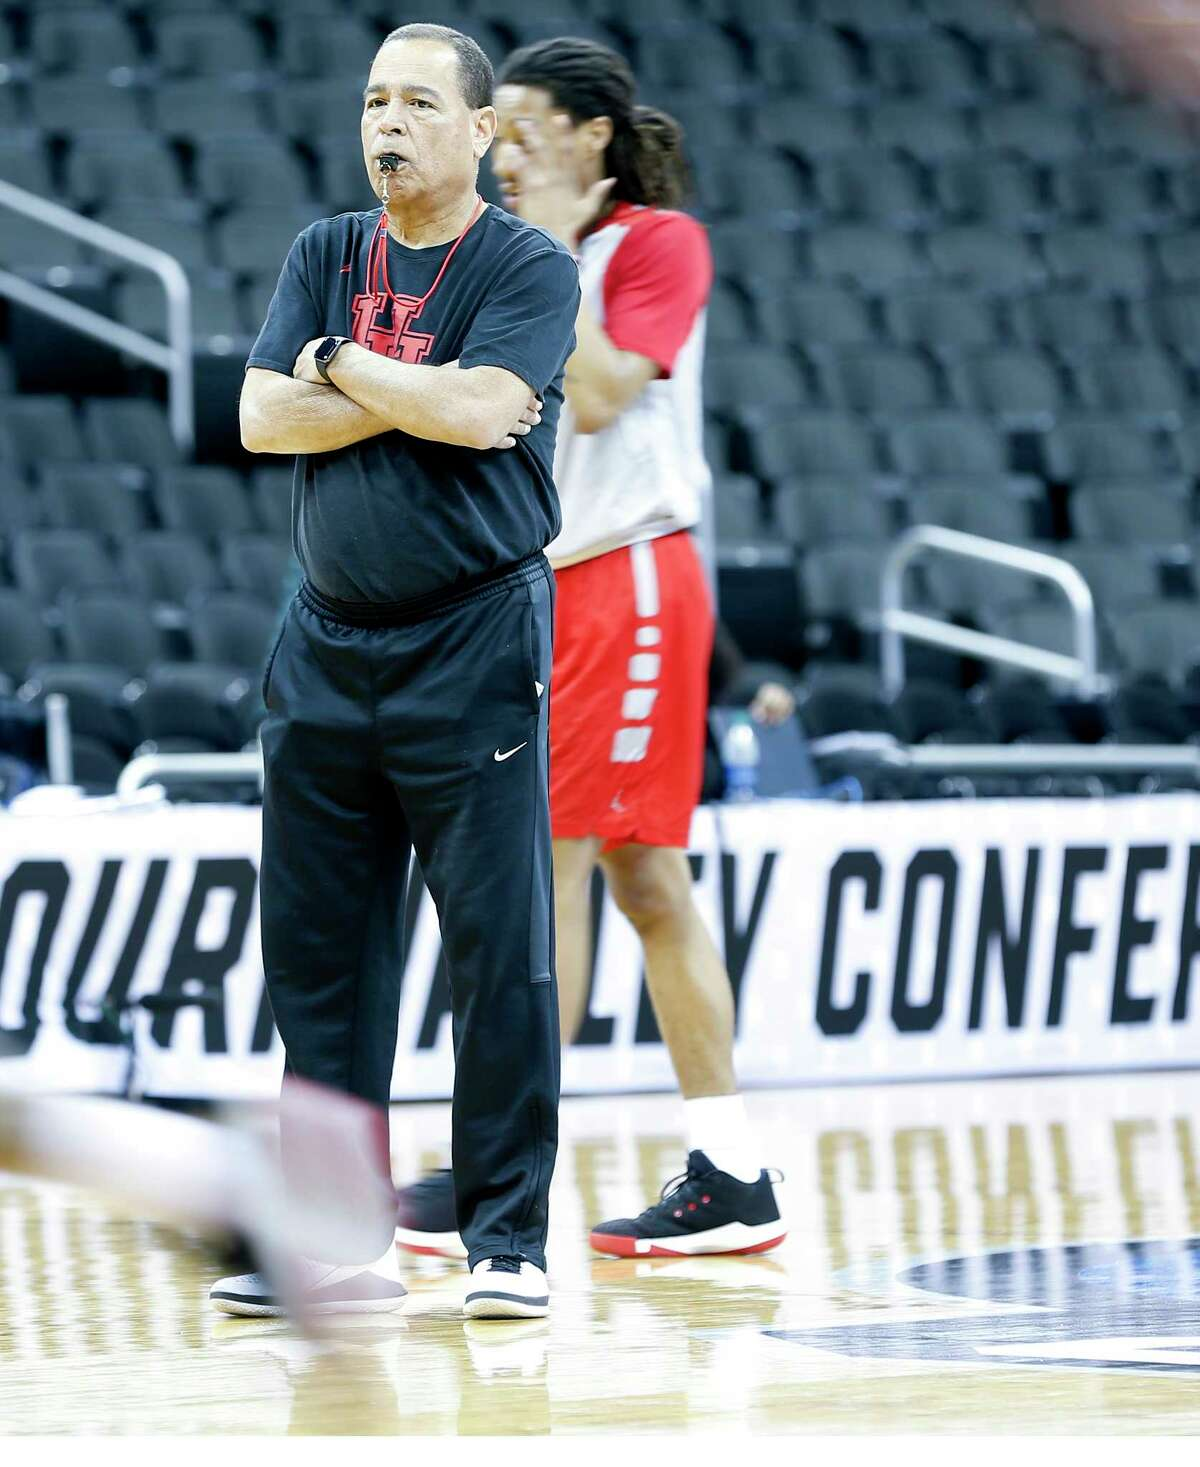 Houston Cougars head coach Kelvin Sampson watches over practice on Thursday, March 29. 2019 at the Sprint Center in Kansas City, MO. Houston will take on Kentucky Wildcats on Friday in the NCAA tournament.